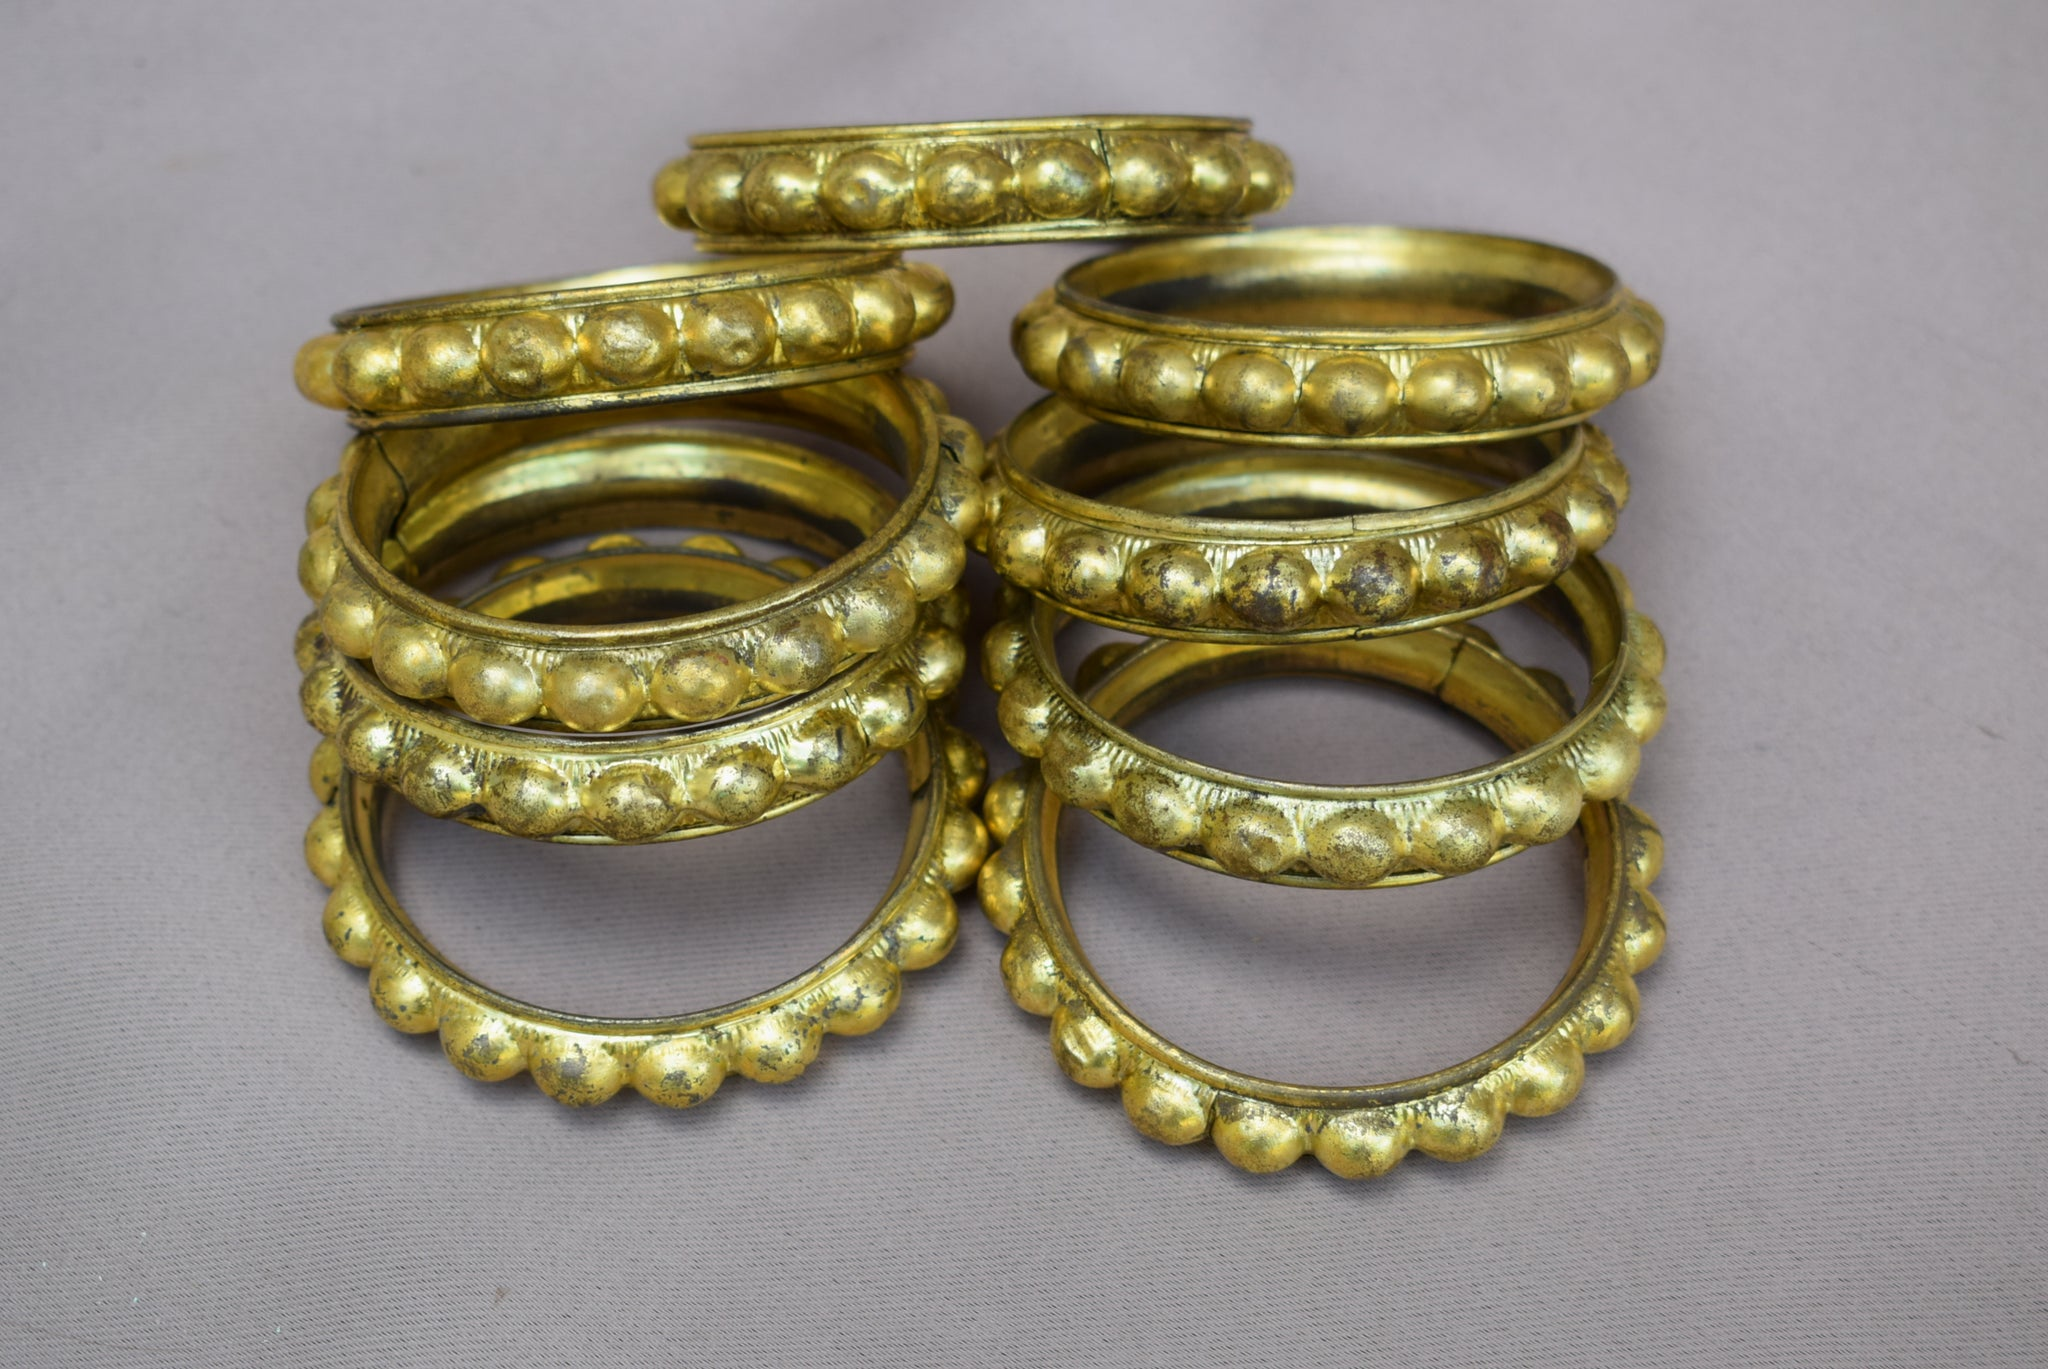 9 Curtain Rings - Charmantiques